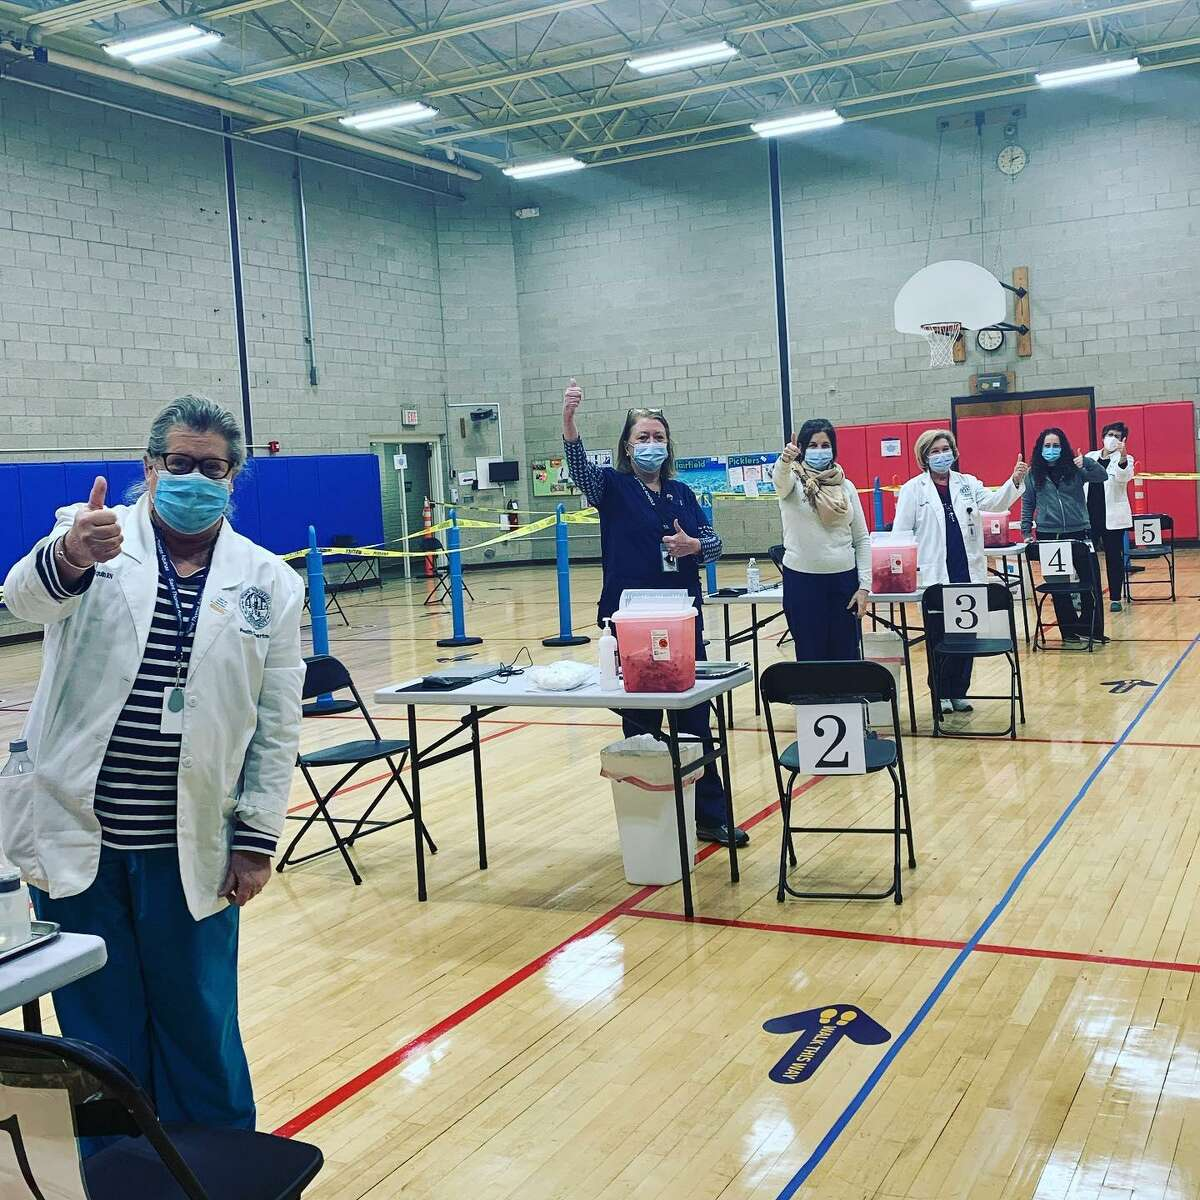 A Fairfield Health Department vaccination clinic on Jan. 7, in which approximately 1,850 people were vaccinated.